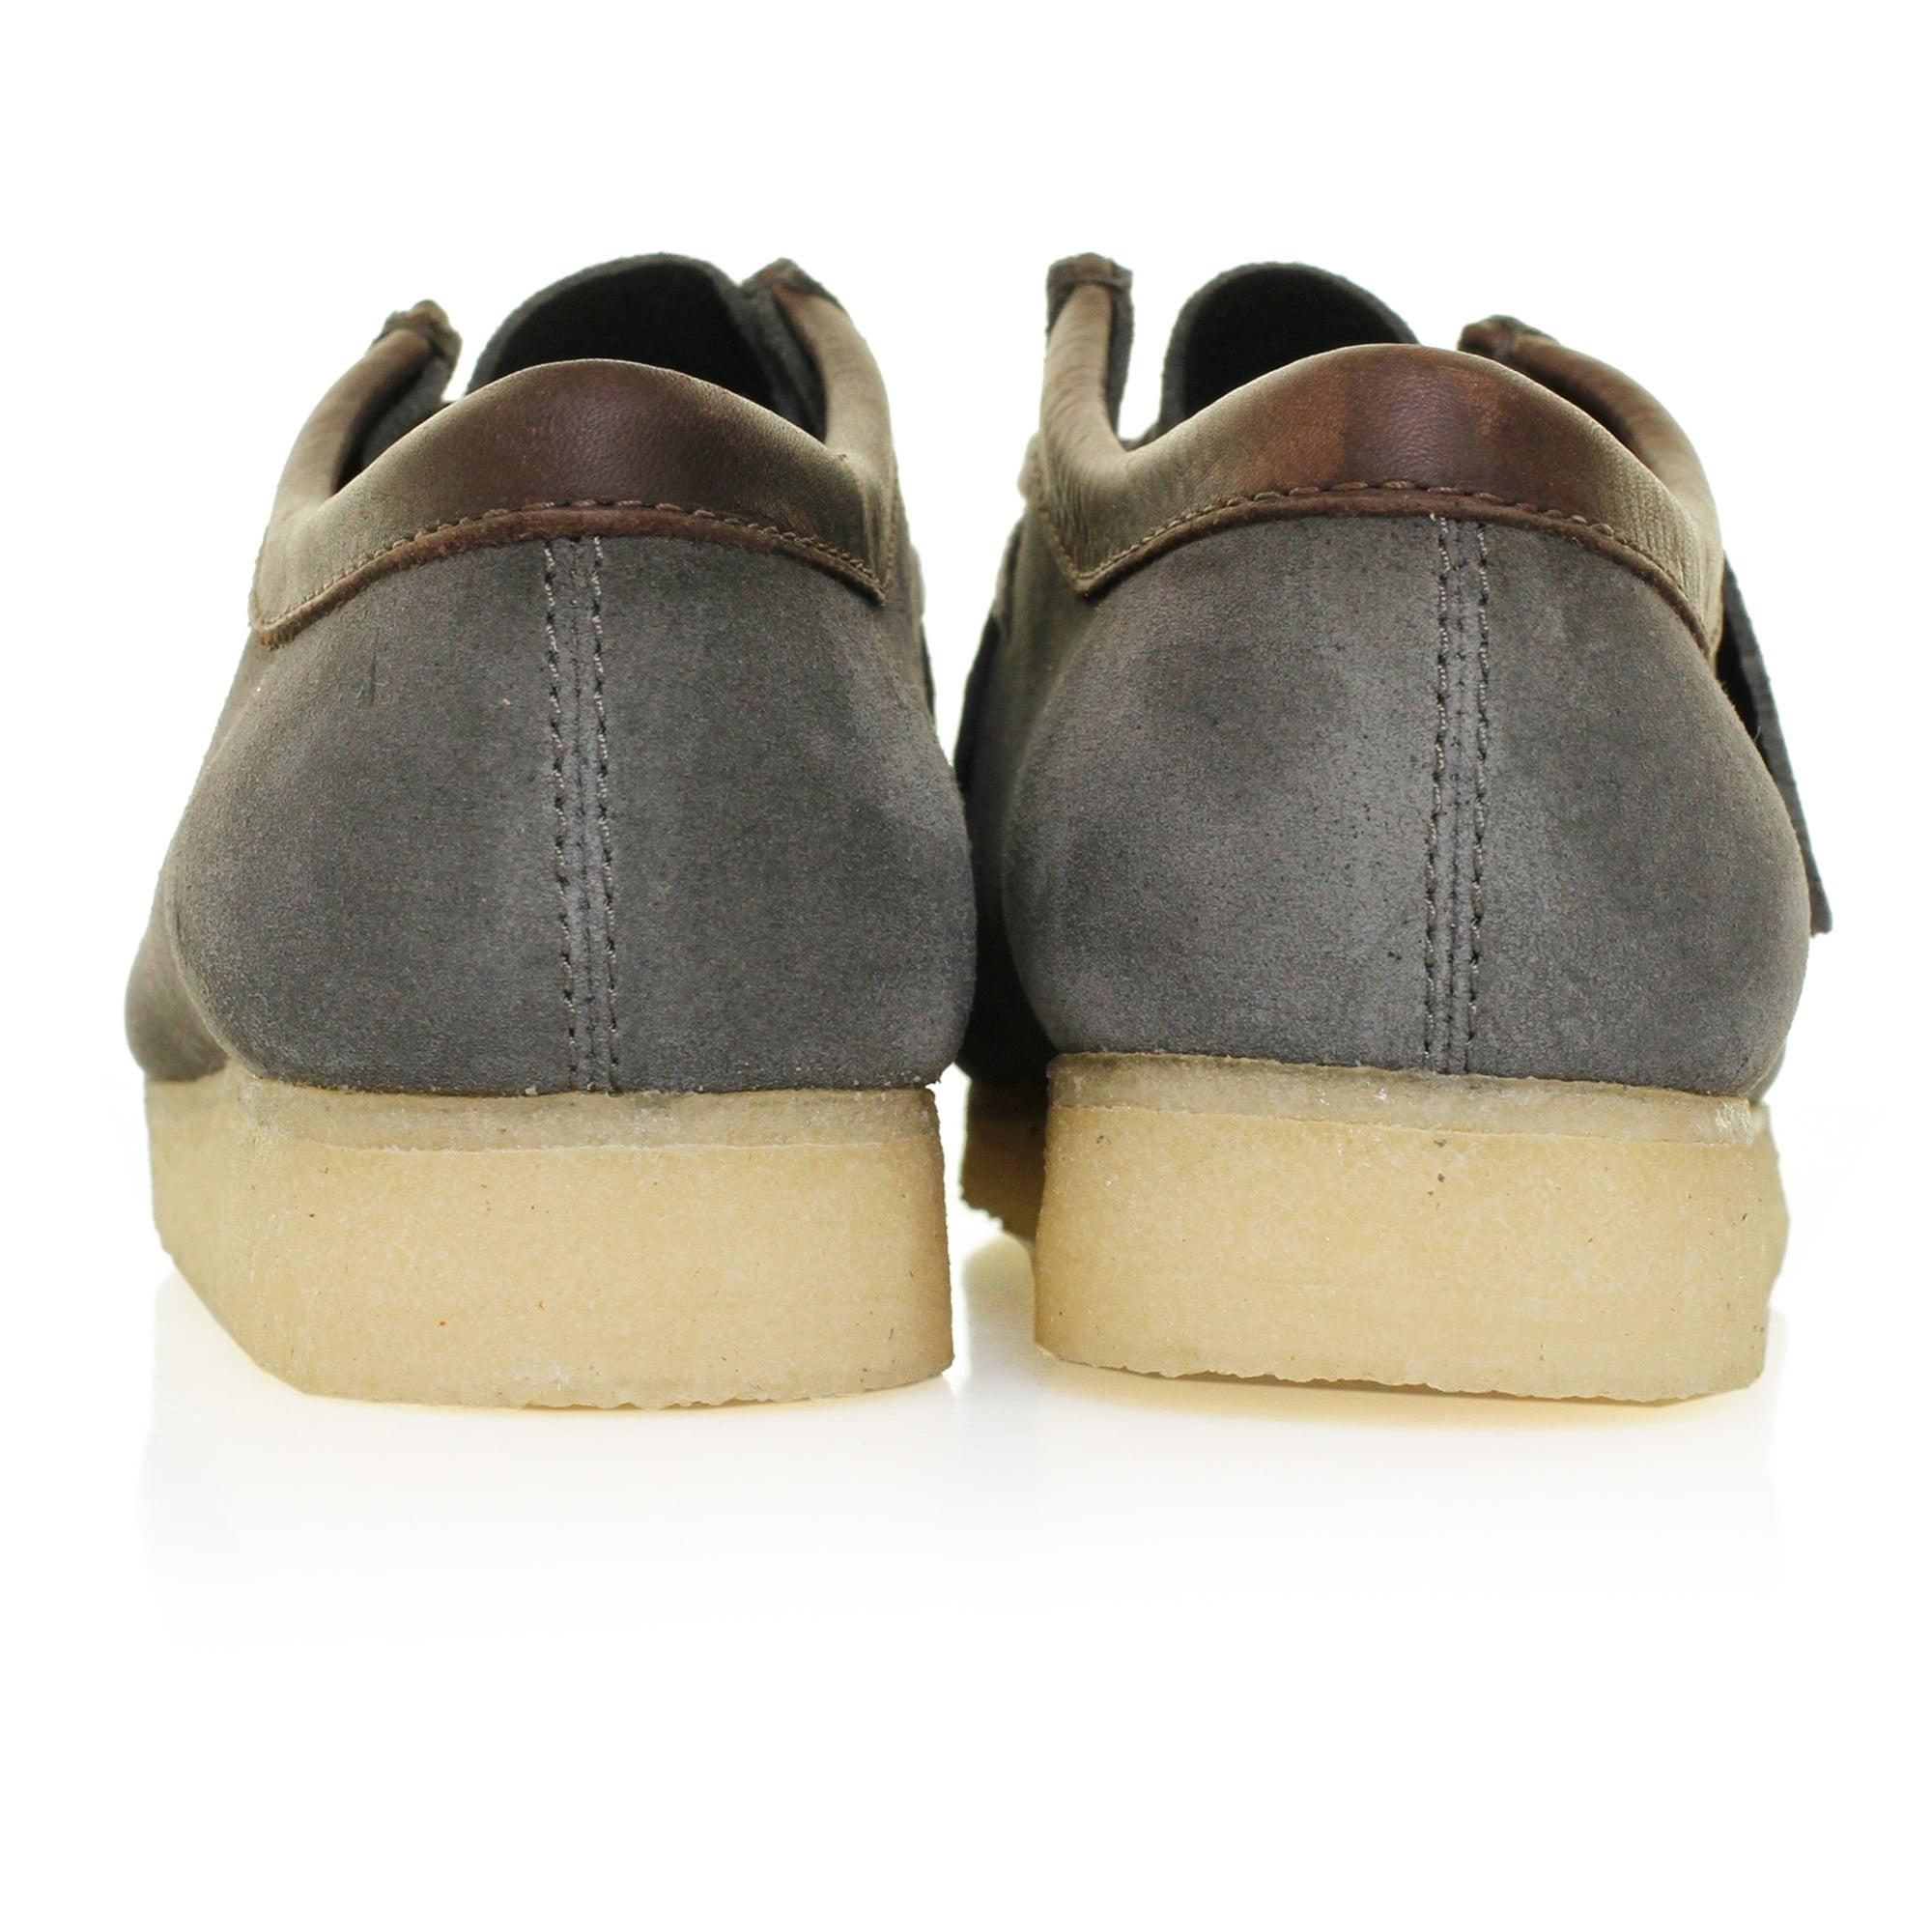 Cheap clarks wallabees - results from brands Clarks, Clarks, products like Clarks Women's Wallabee Maple Suede B - Medium, Clarks Wallabee (Maple Suede) Women's Lace up casual Shoes, Clarks Padmore II - Men's - Chukkas Black Oily Leather, Shoes.